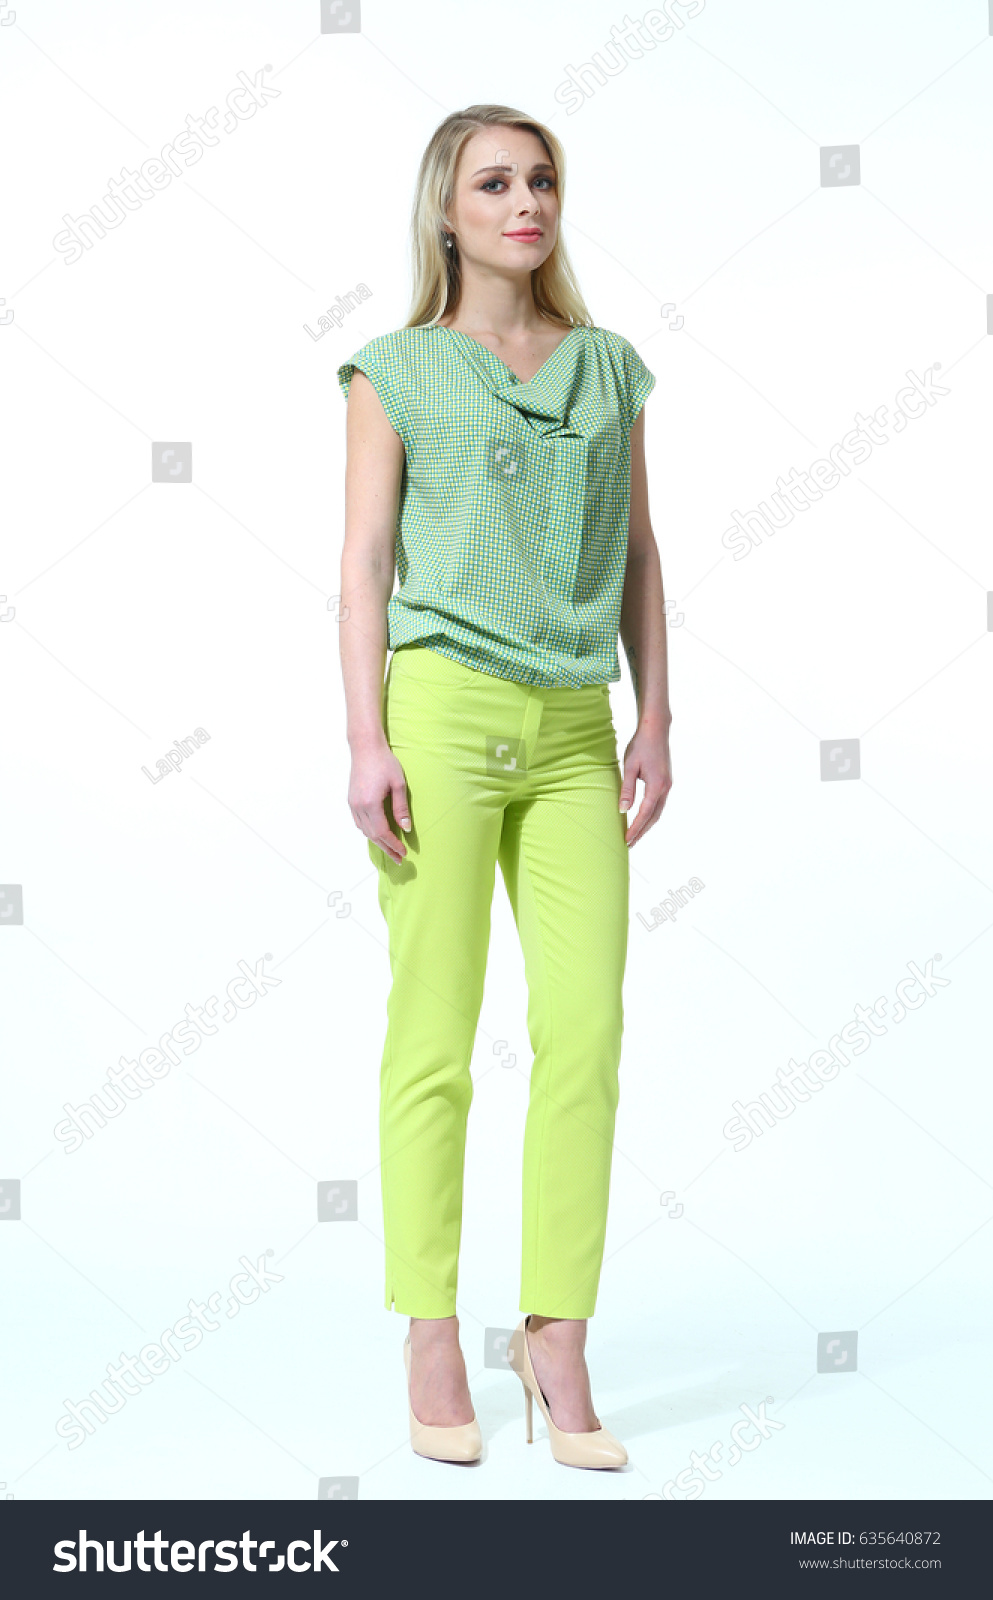 245af76aad23c0 blond european model in summer casual summer print blouse yellow trousers high  heels shoes full body photo isolated on white